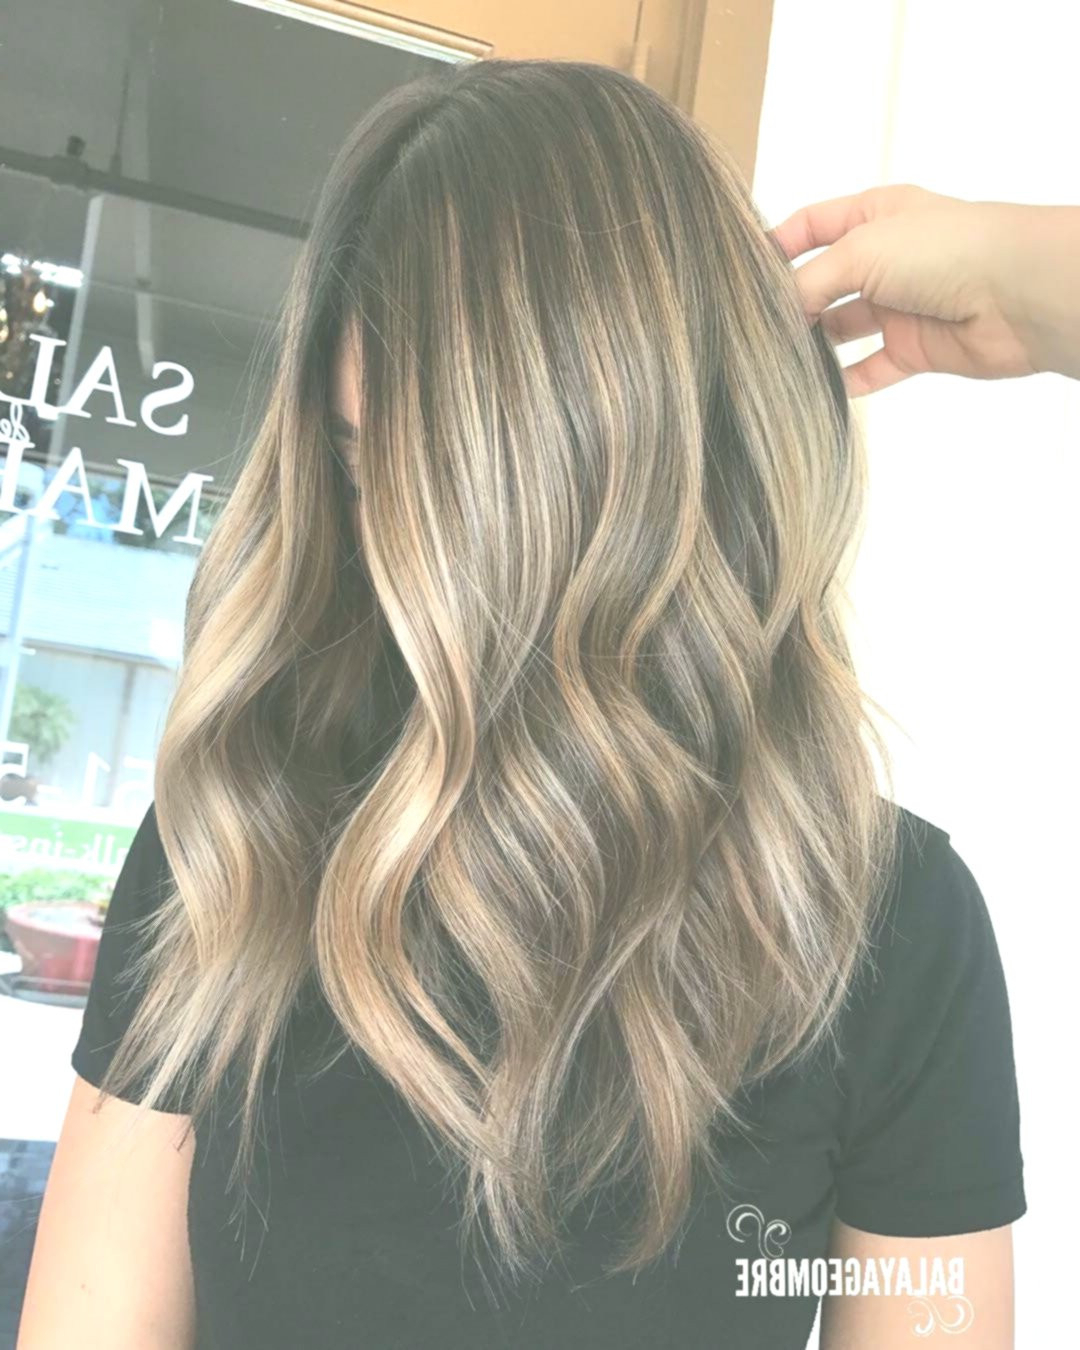 Medium Length Layered Hairstyles For Thick Hair 2019 10 Throughout 2017 Mid Length Layered Ash Blonde Hairstyles (View 9 of 20)